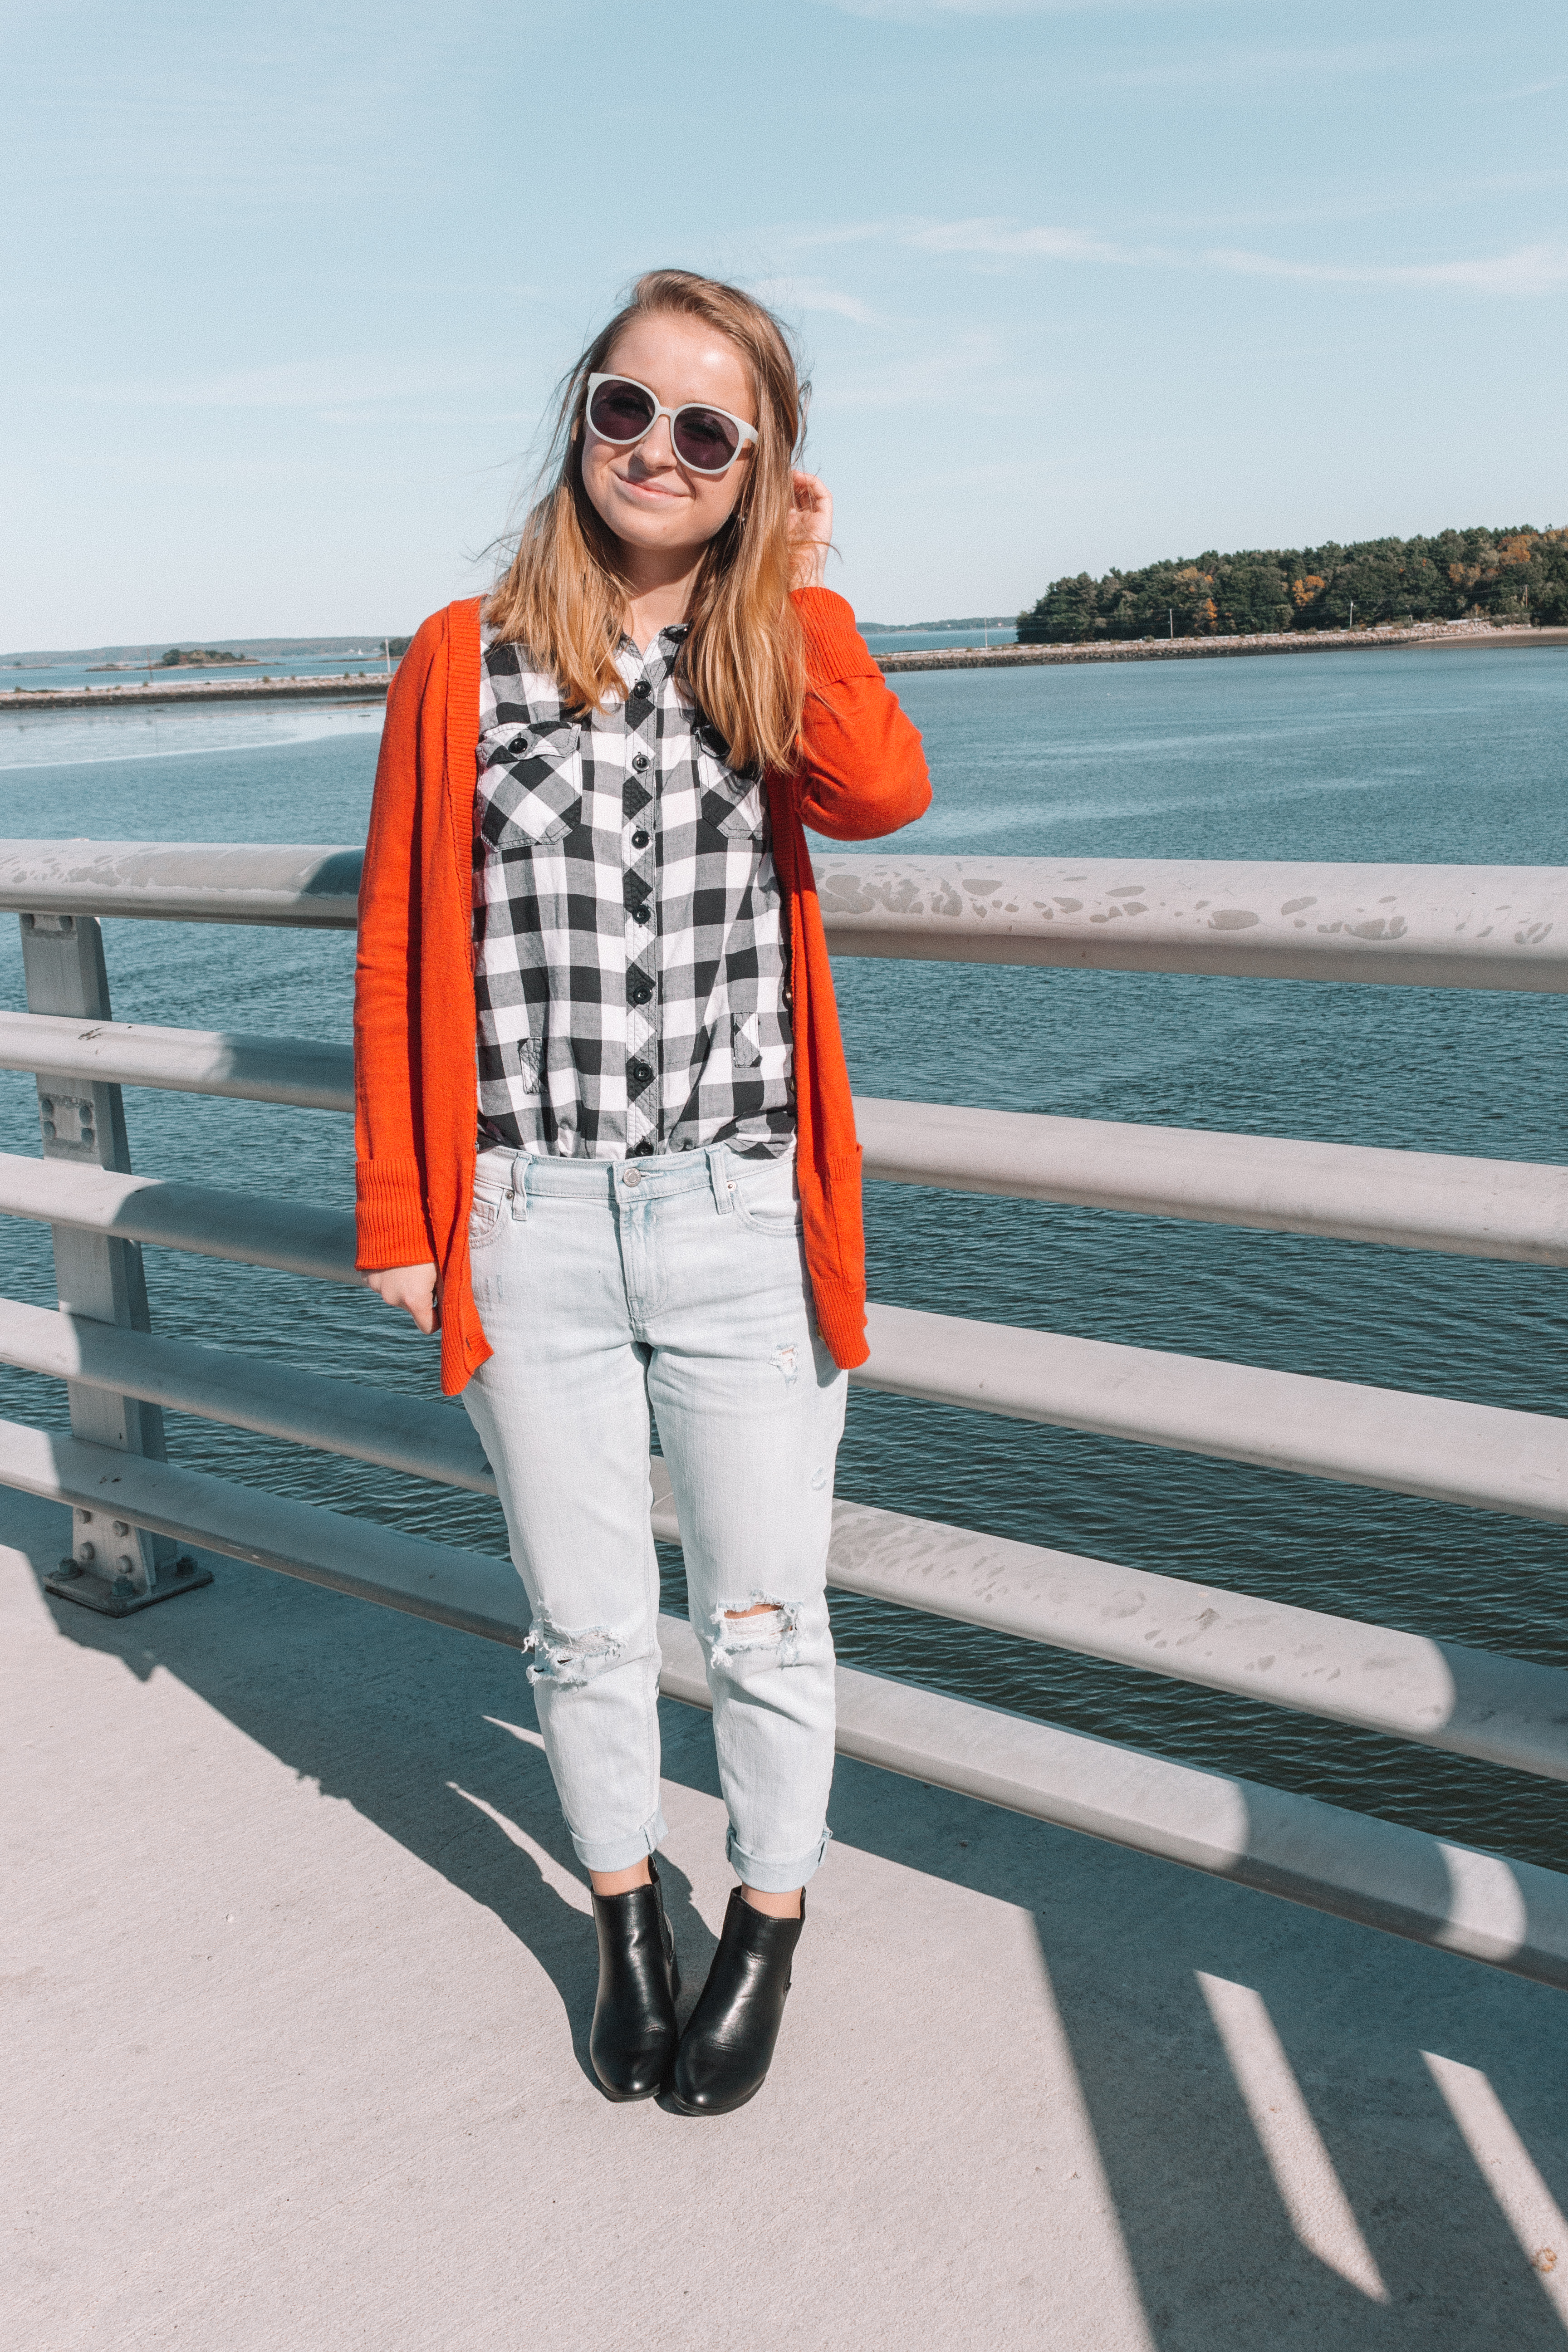 My Favorite Chelsea Boots | Hey Its Camille Grey #fashion #chelseaboots #boots #target